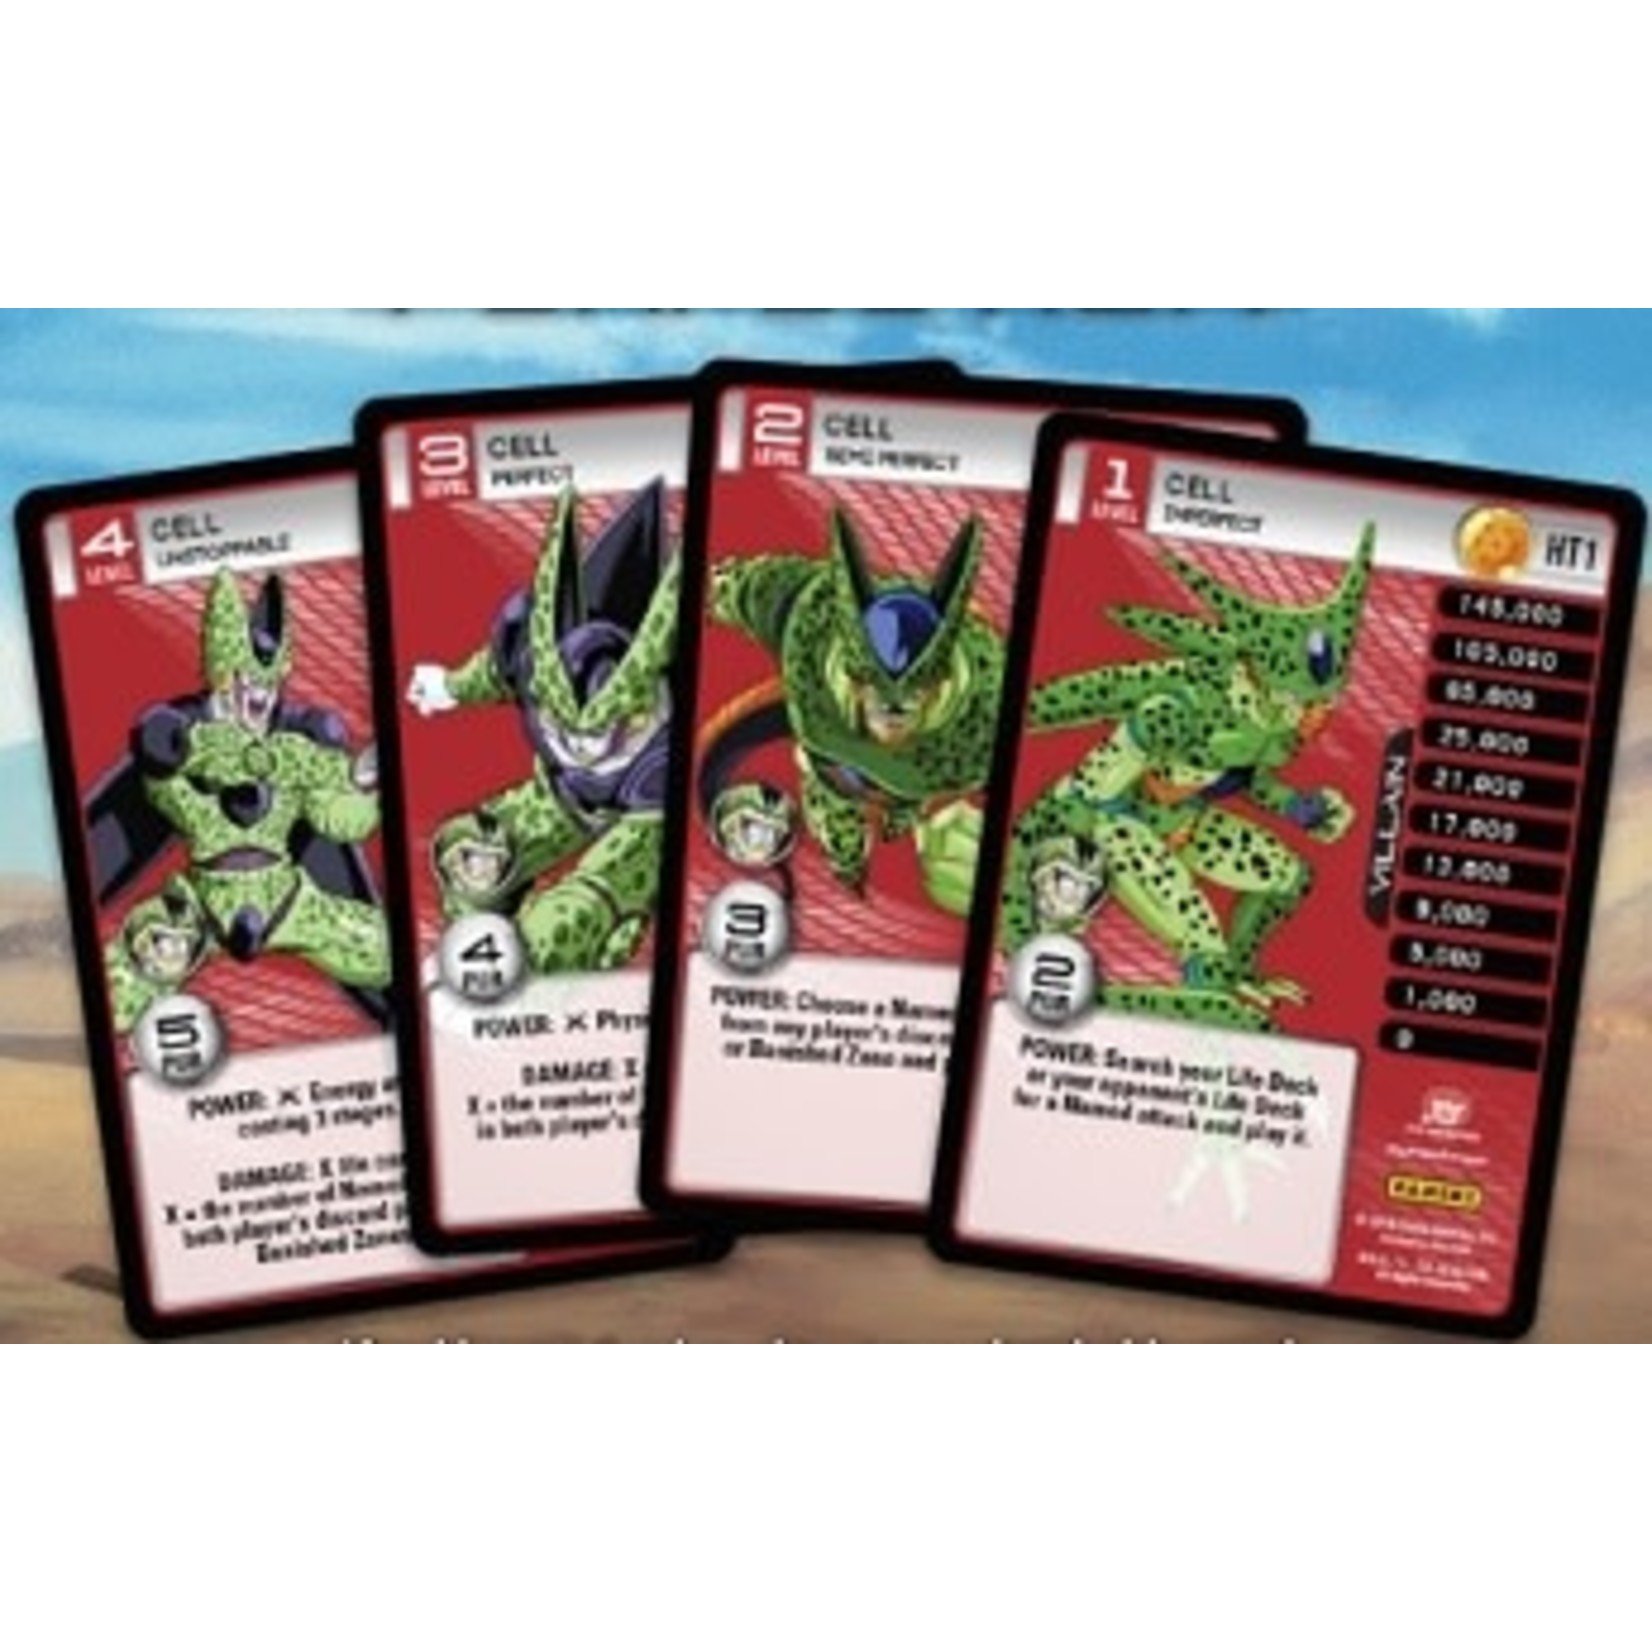 Panini Copy of Dragon Ball Z Perfection Booster